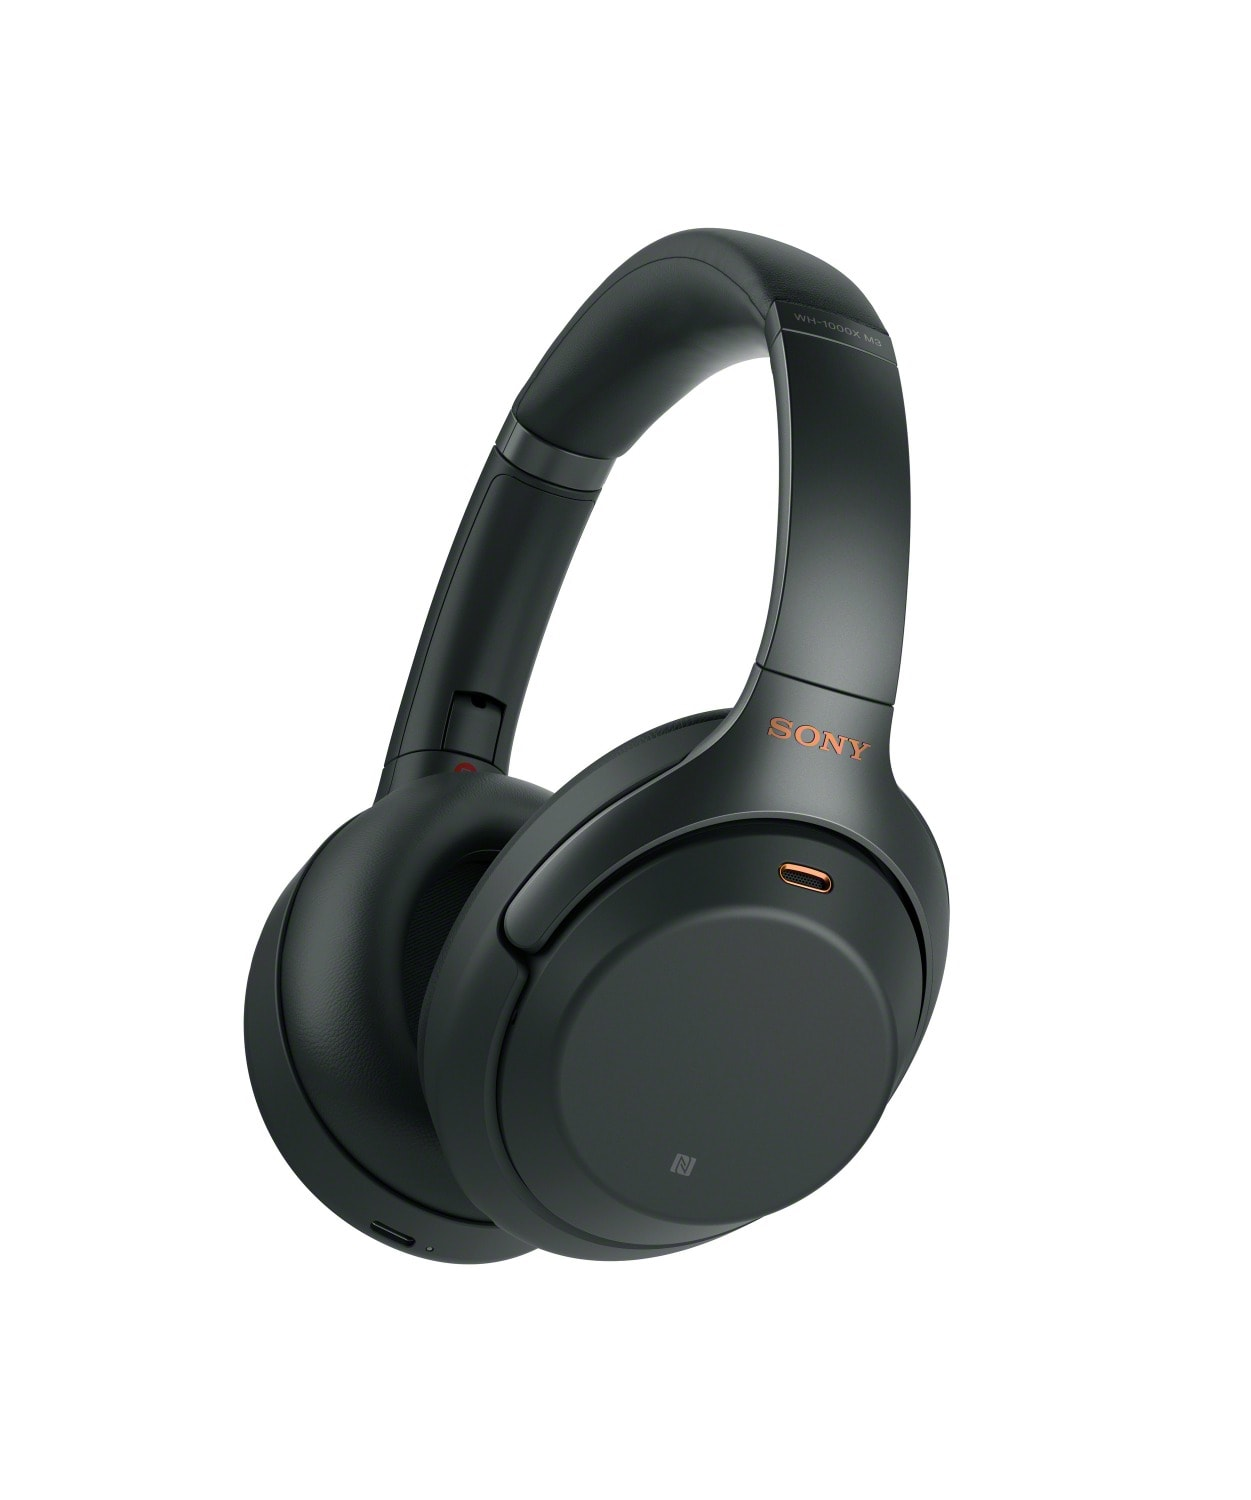 Sony Noise Cancelling Headphones Black